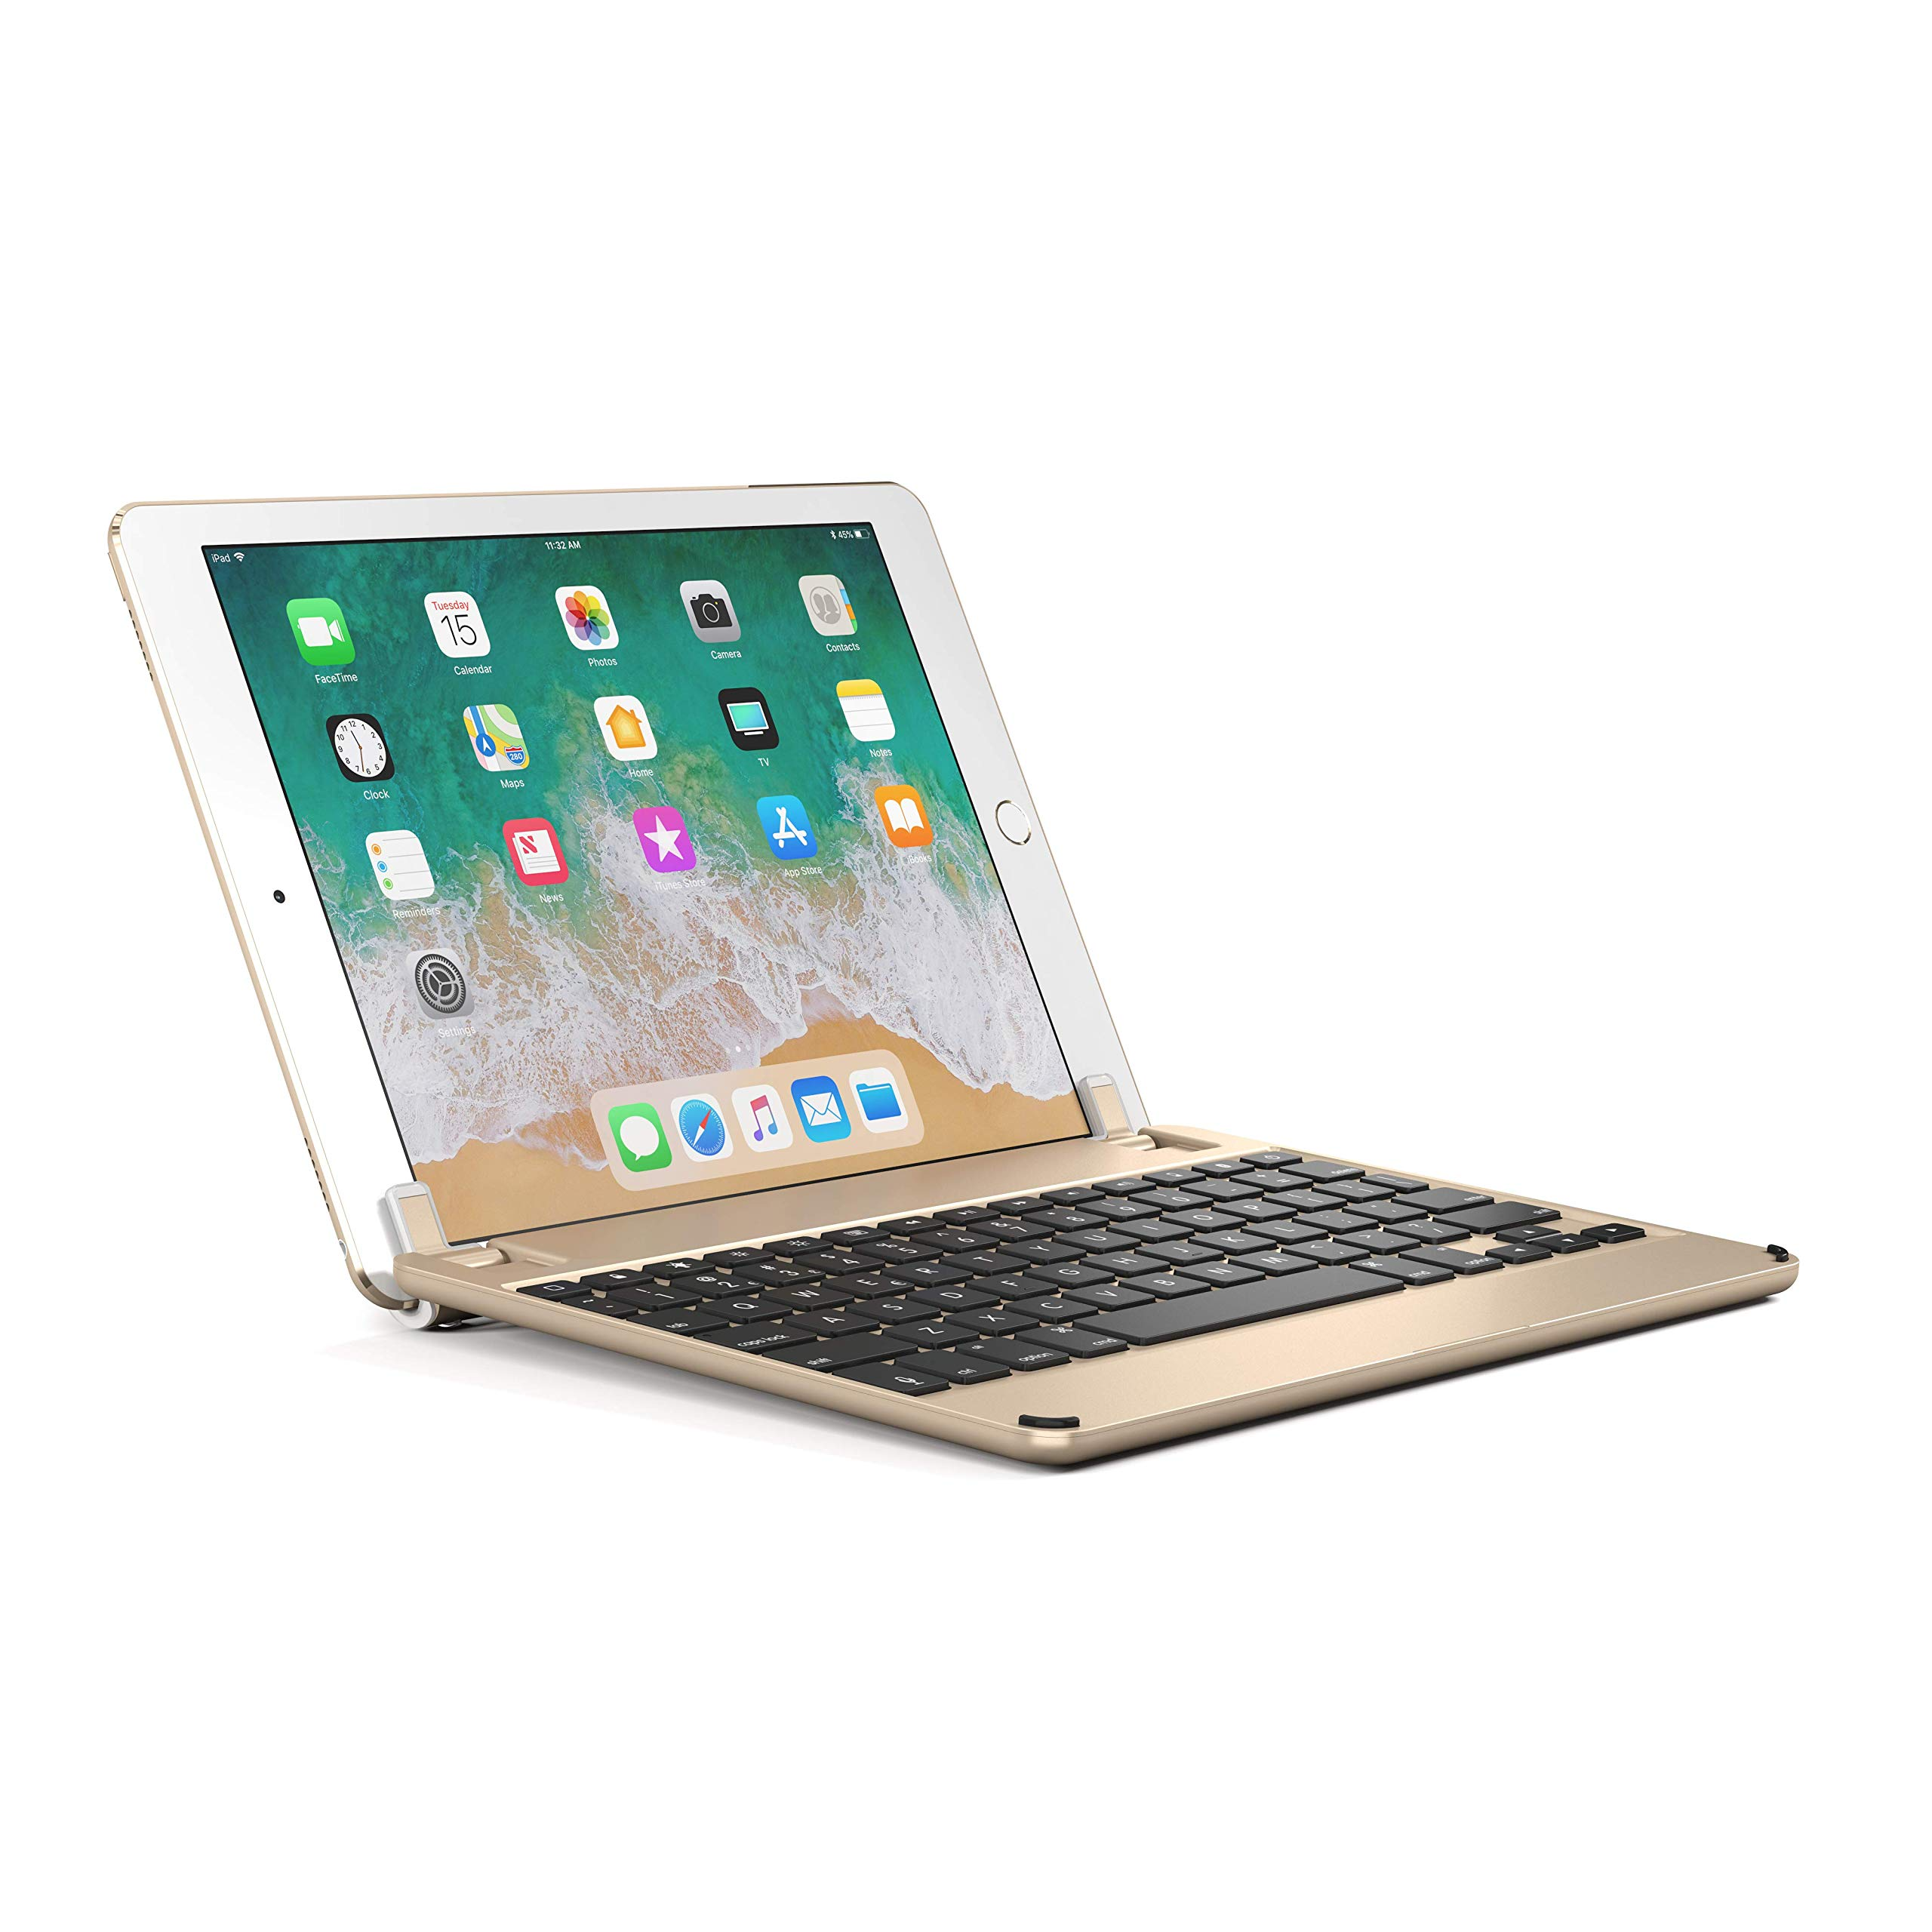 Brydge 9.7 iPad Keyboard, Aluminum Bluetooth Keyboard 9.7 inch iPad (6th Gen), 5th Gen iPad (2017), iPad Pro 9.7 inch, Air 1 2 (Gold)